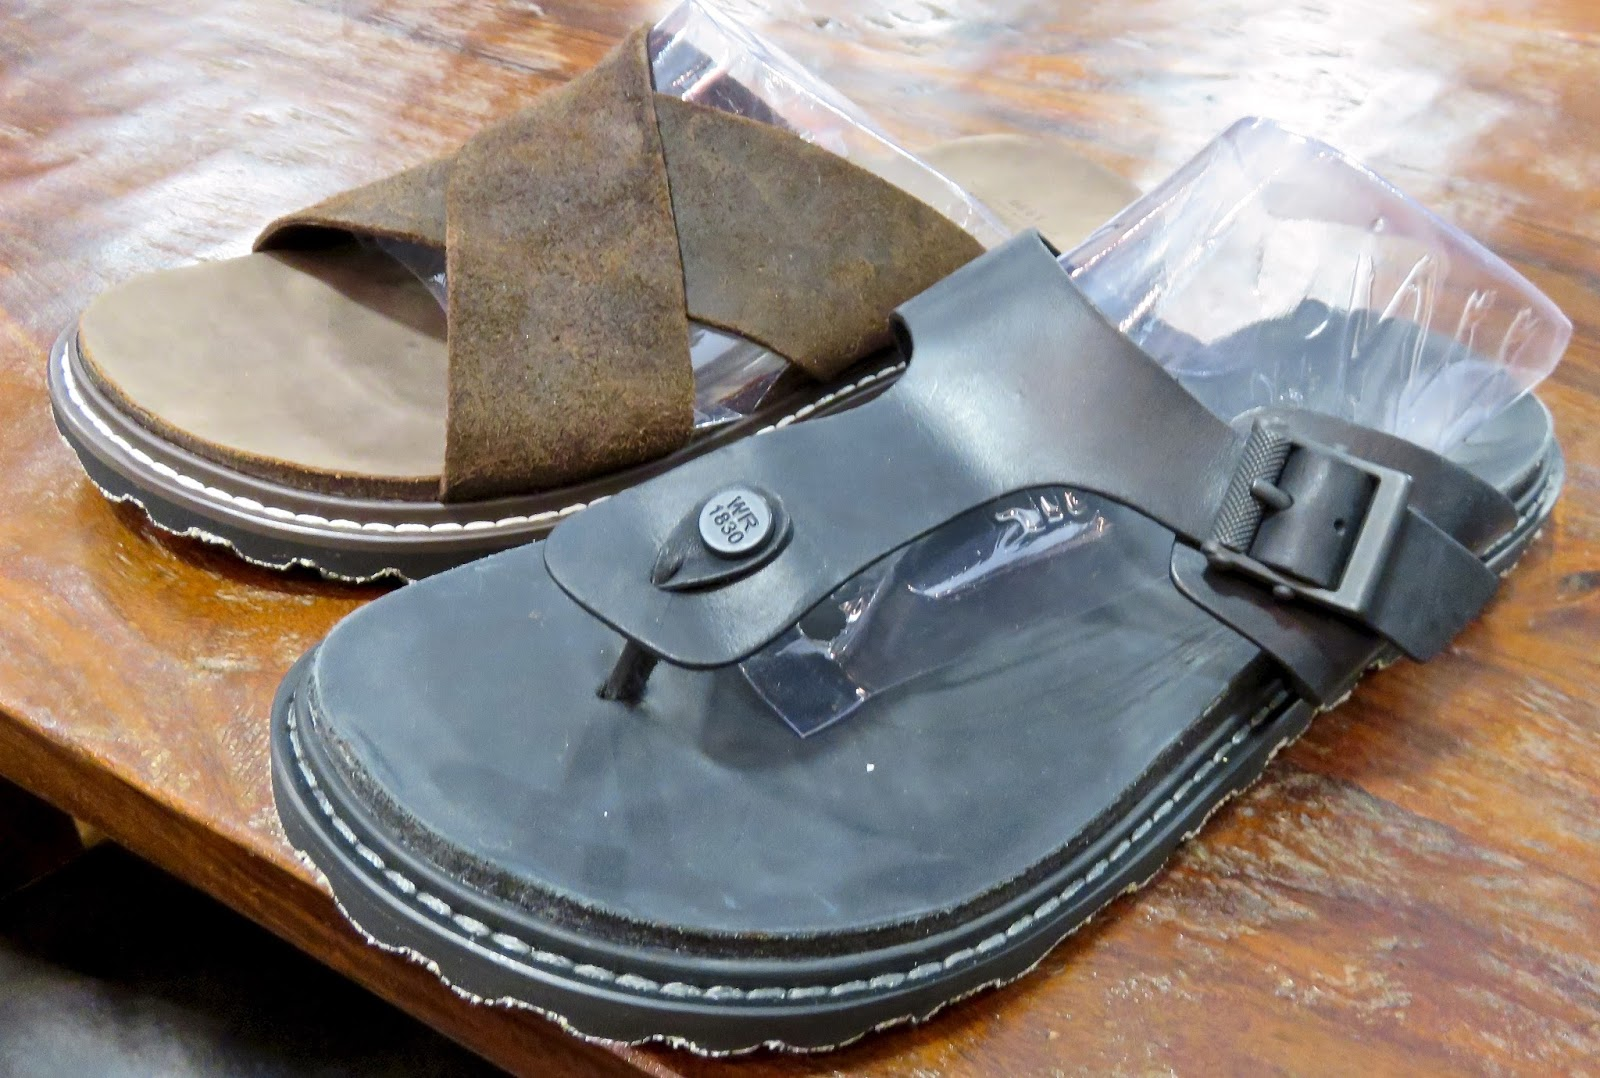 f72f89e825a4b Guy sandals-that look handsome...sturdy rubber outsole -good enough for  city streets...in front Lakeside in full grain leather